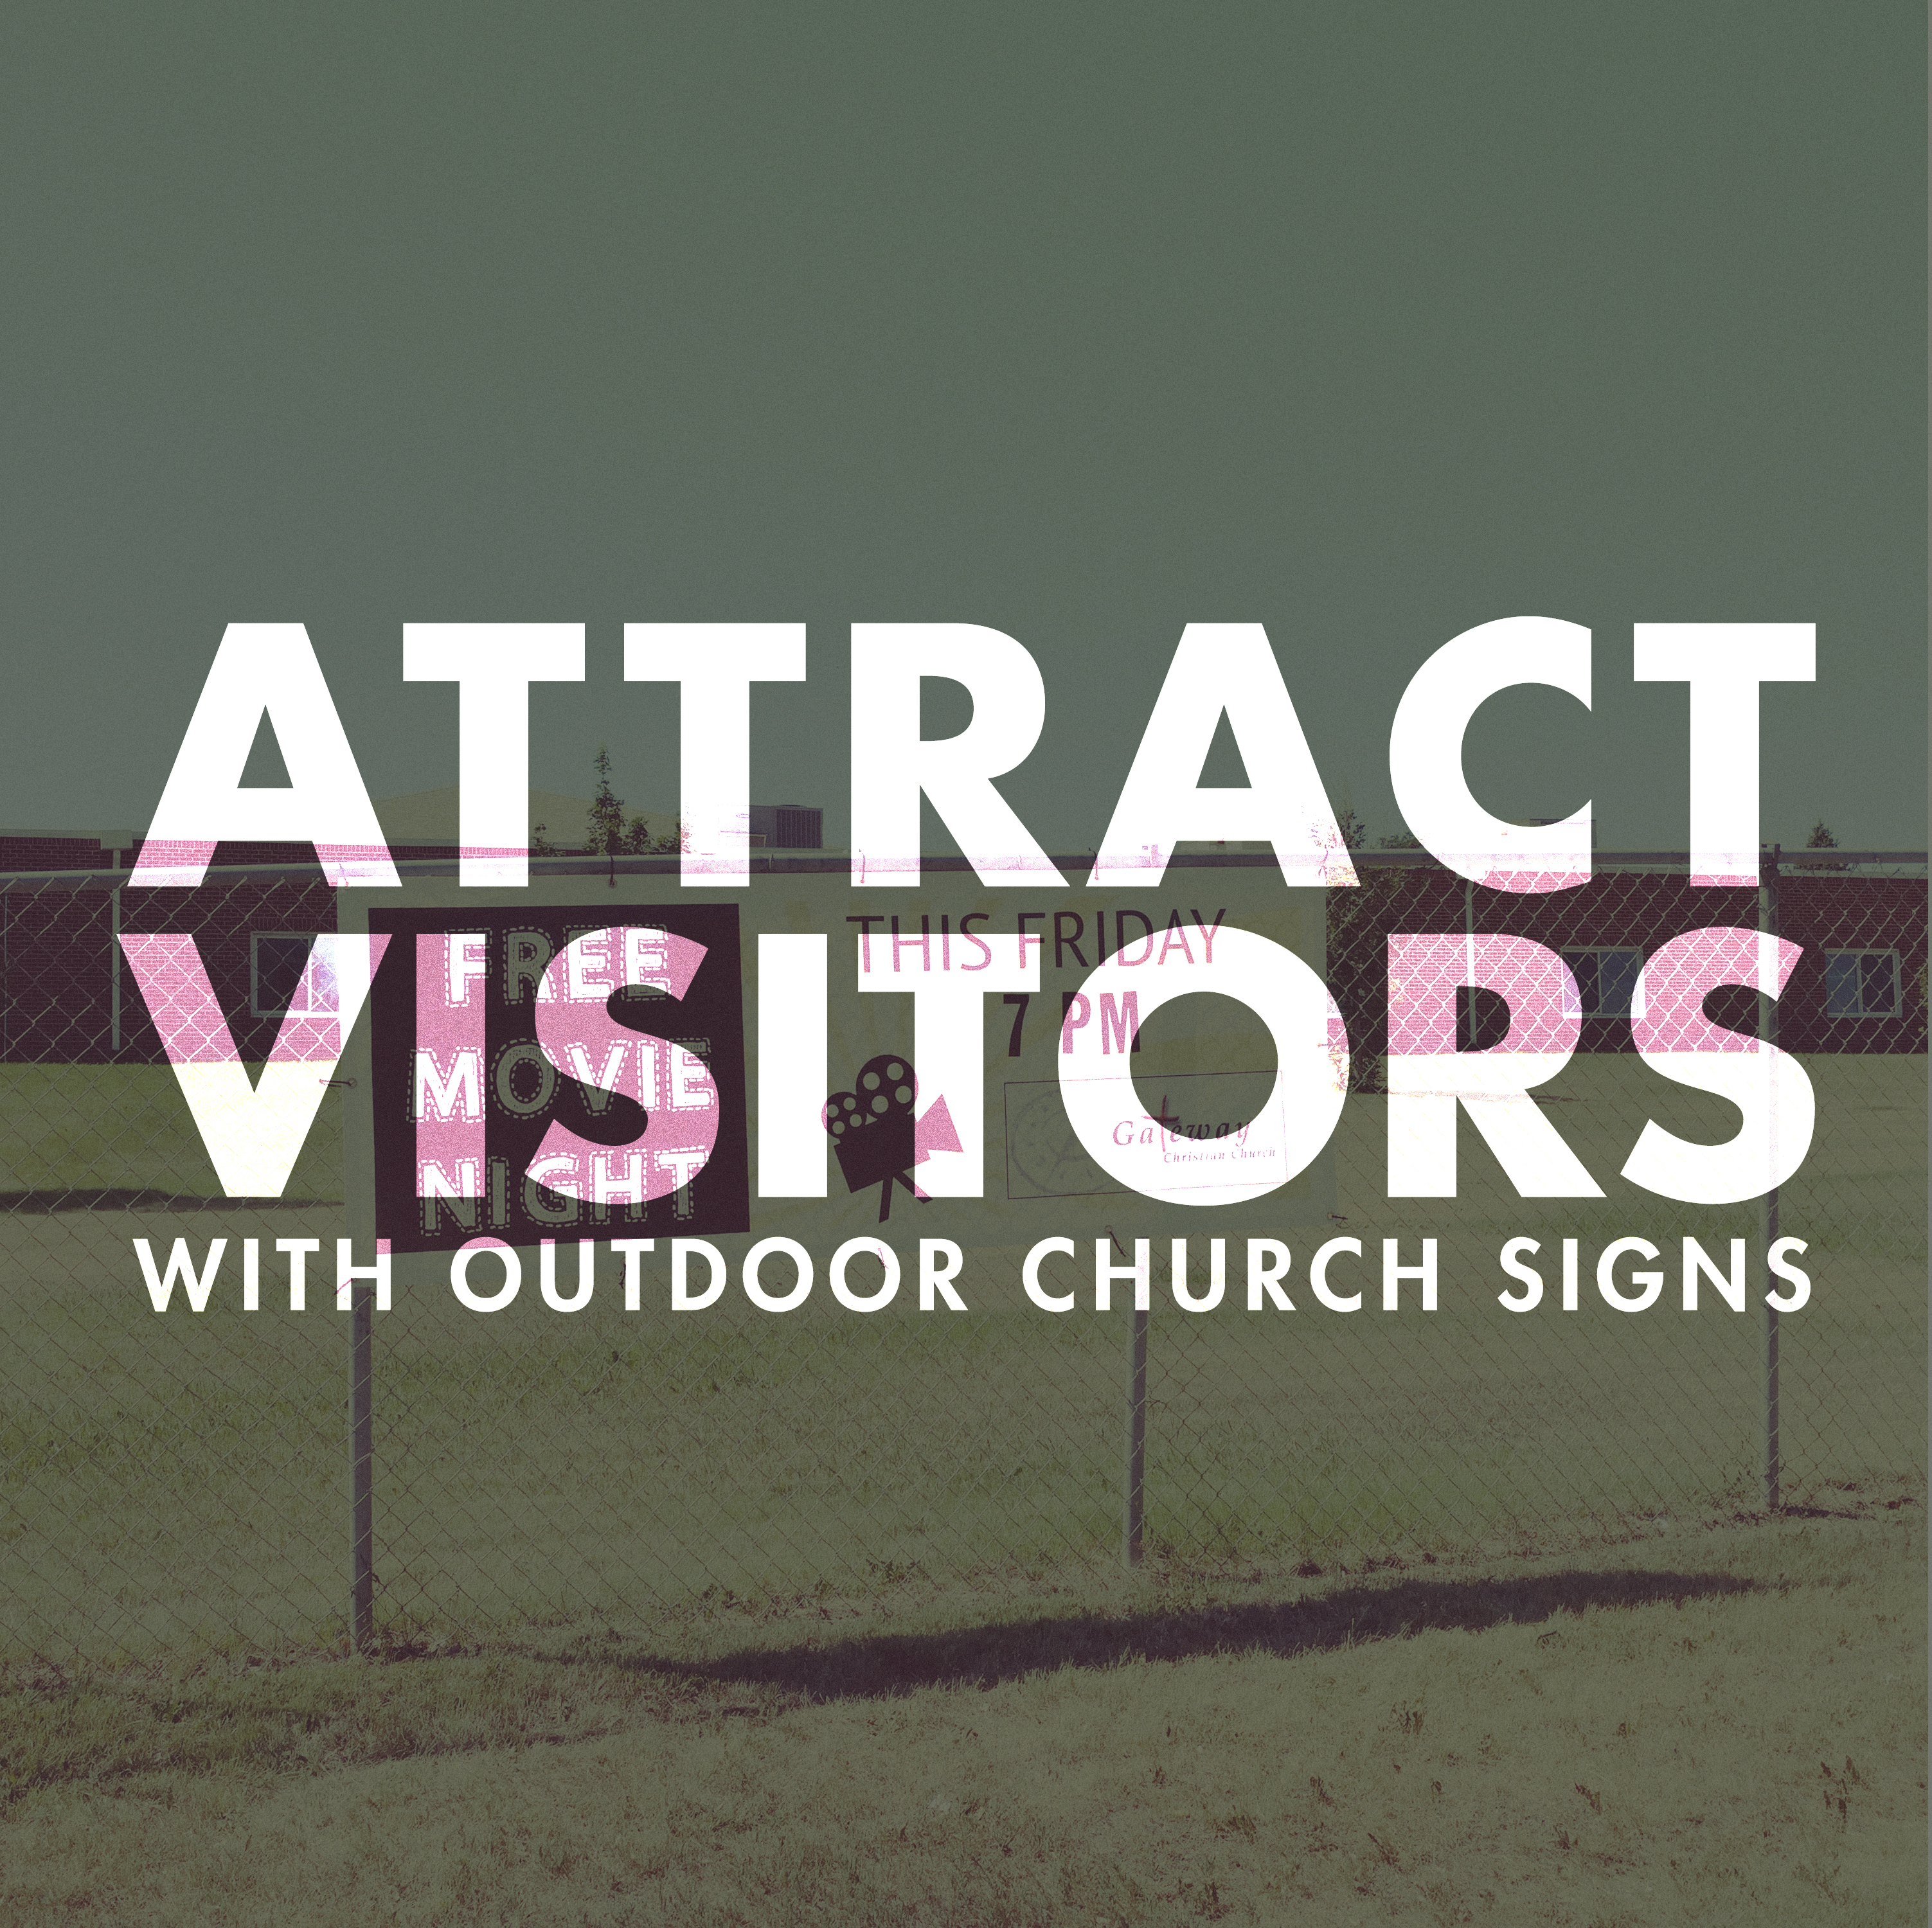 Attract Visitors with Outdoor Church Signs